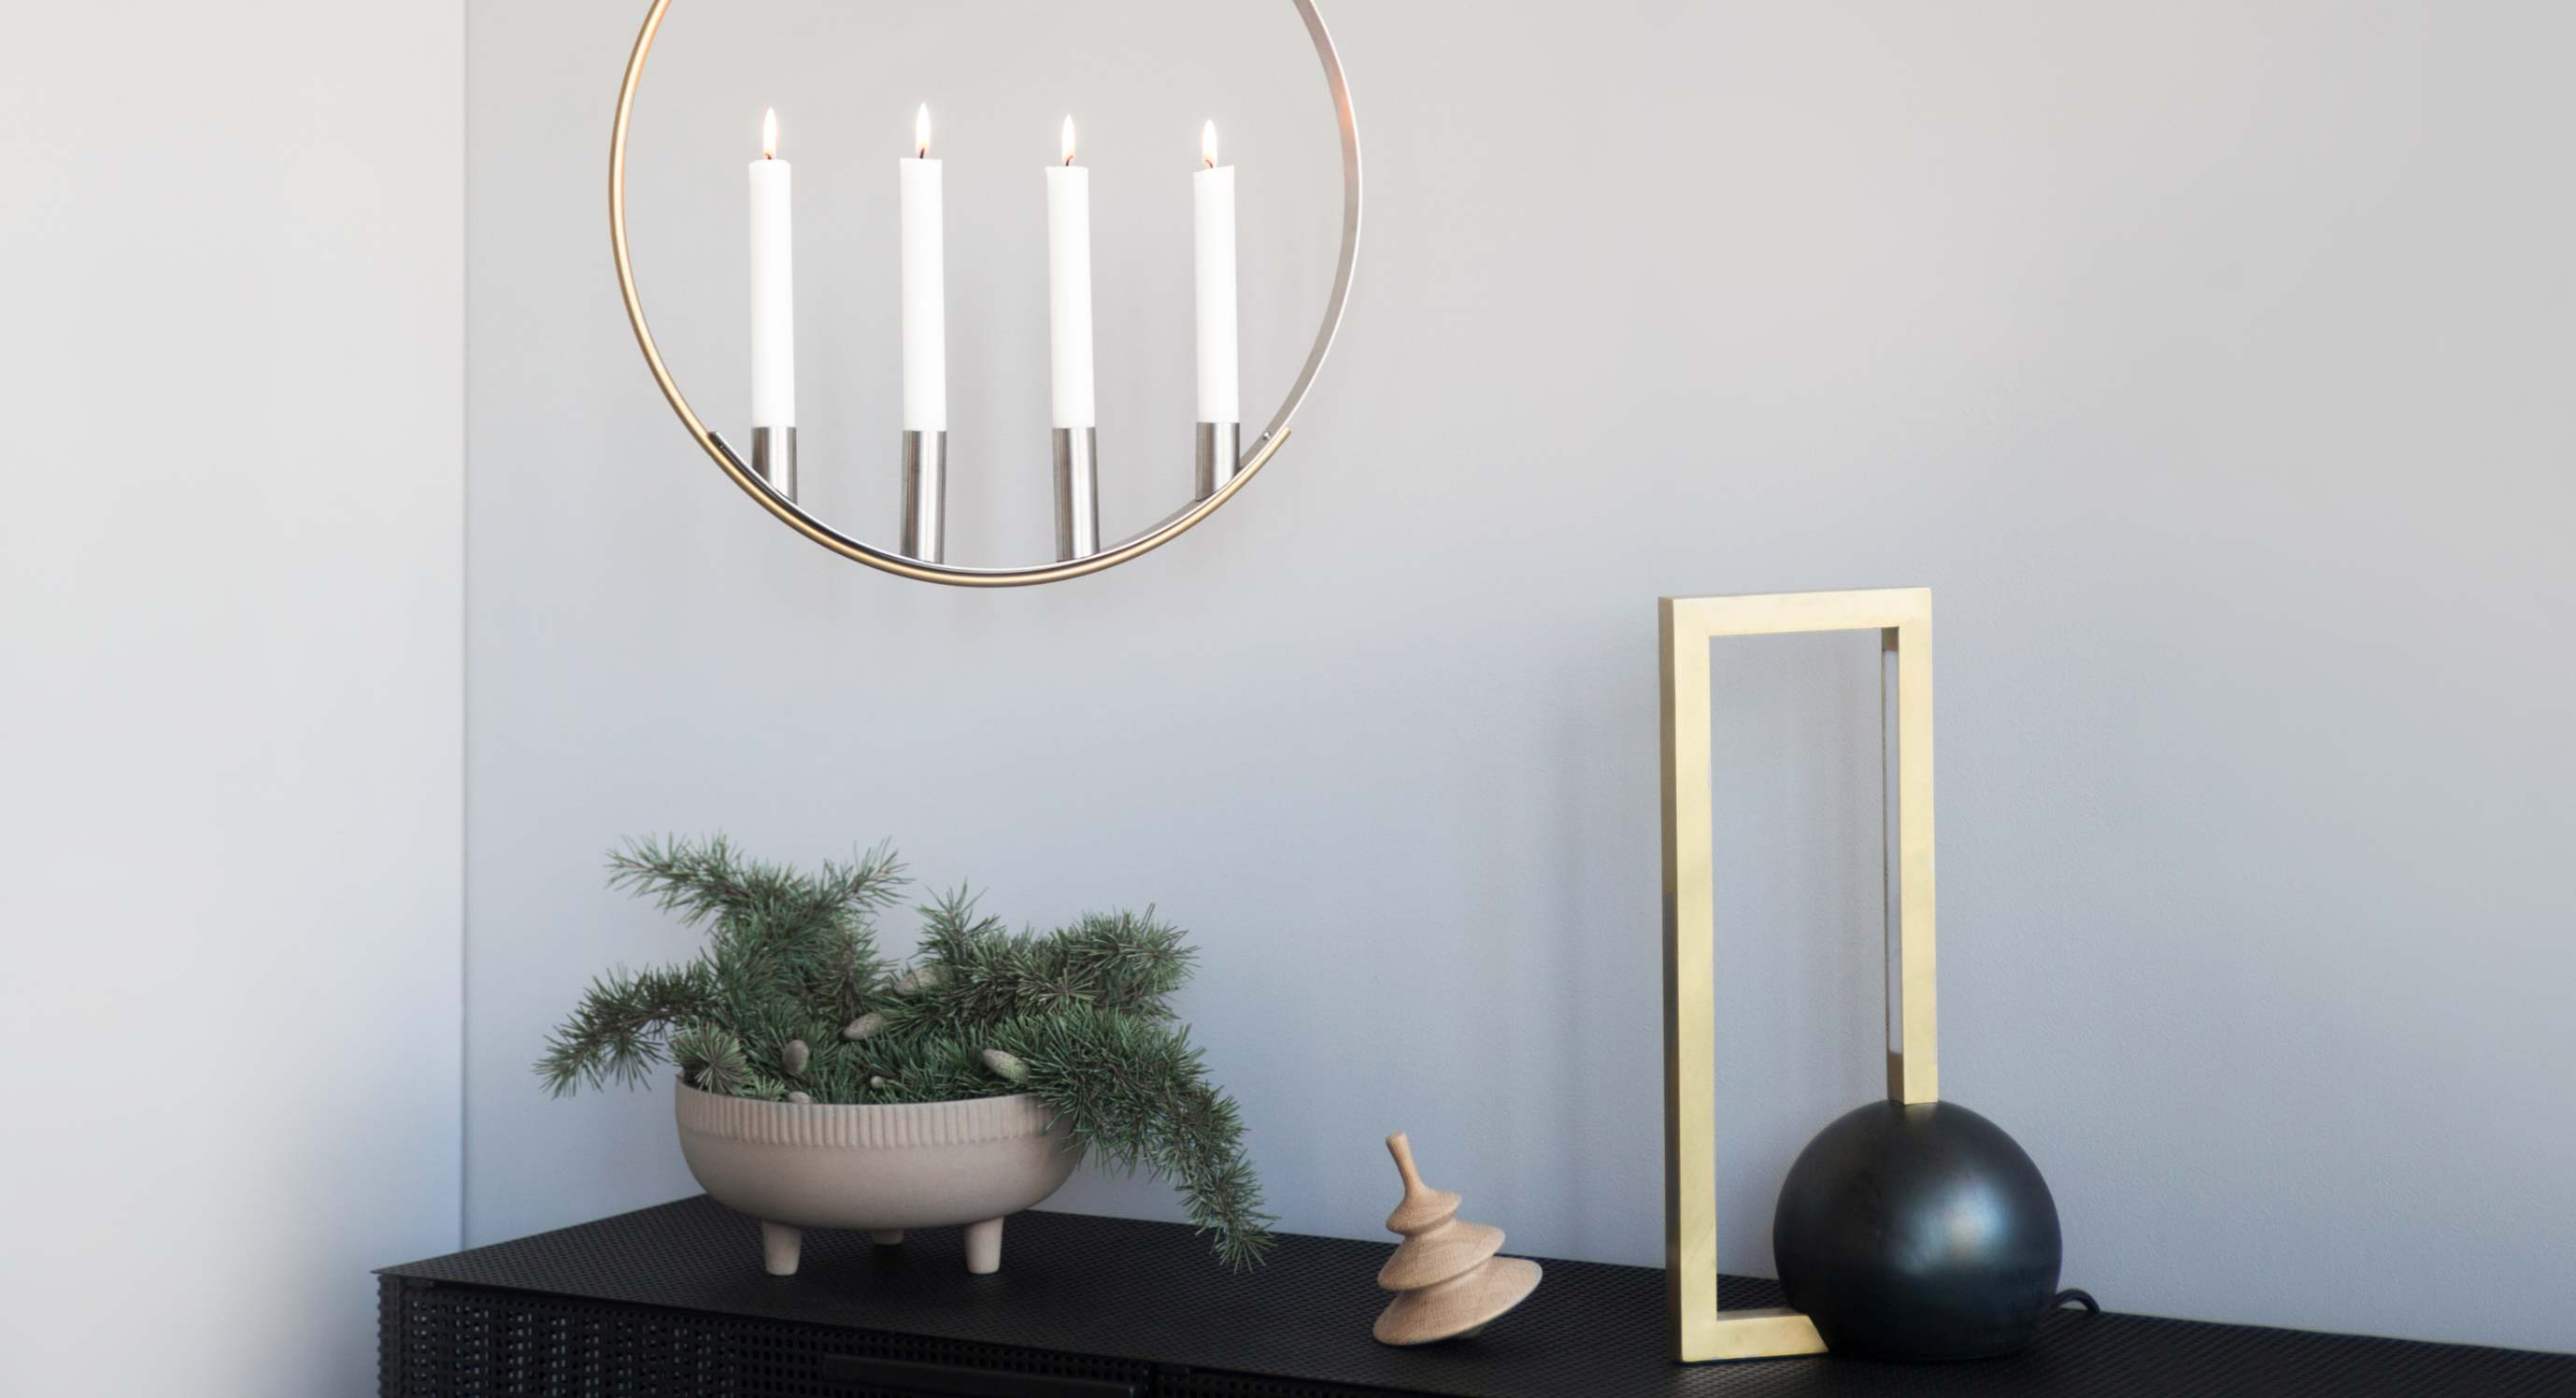 5 Easy Ways To Hygge Your Home